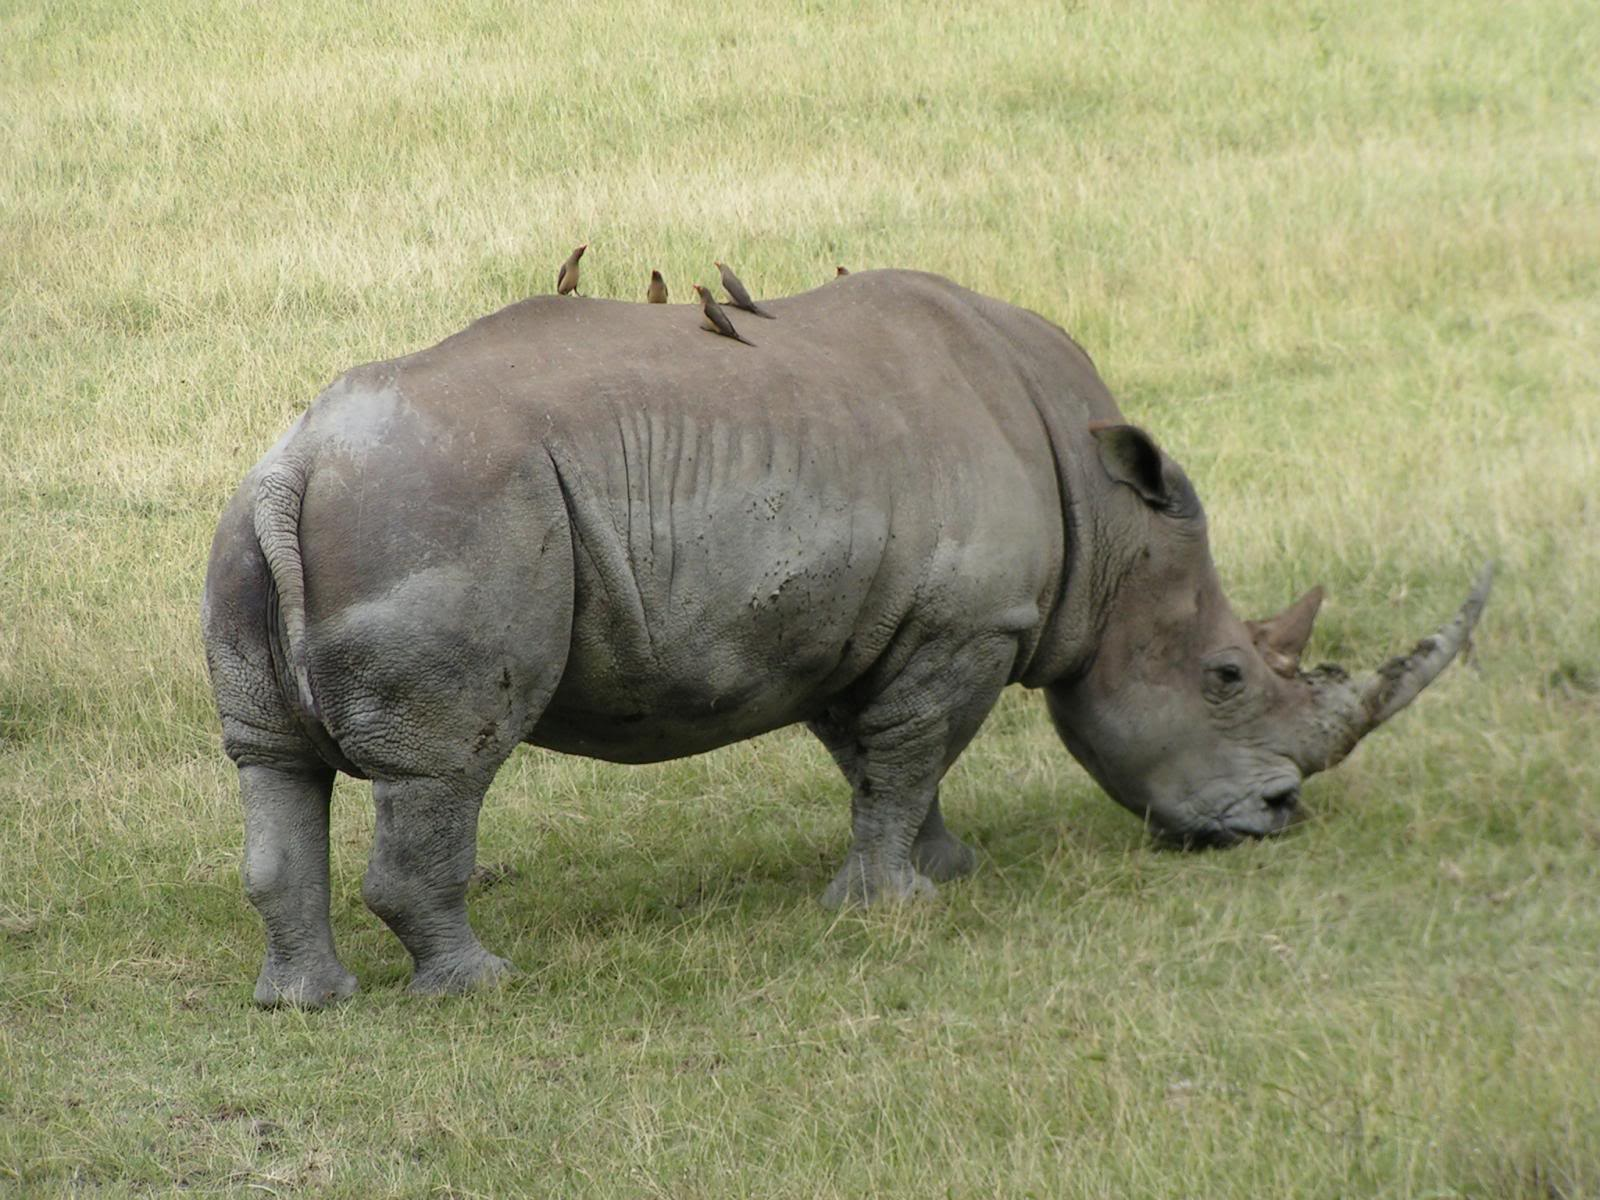 an oxpecker and rhinoceros relationship